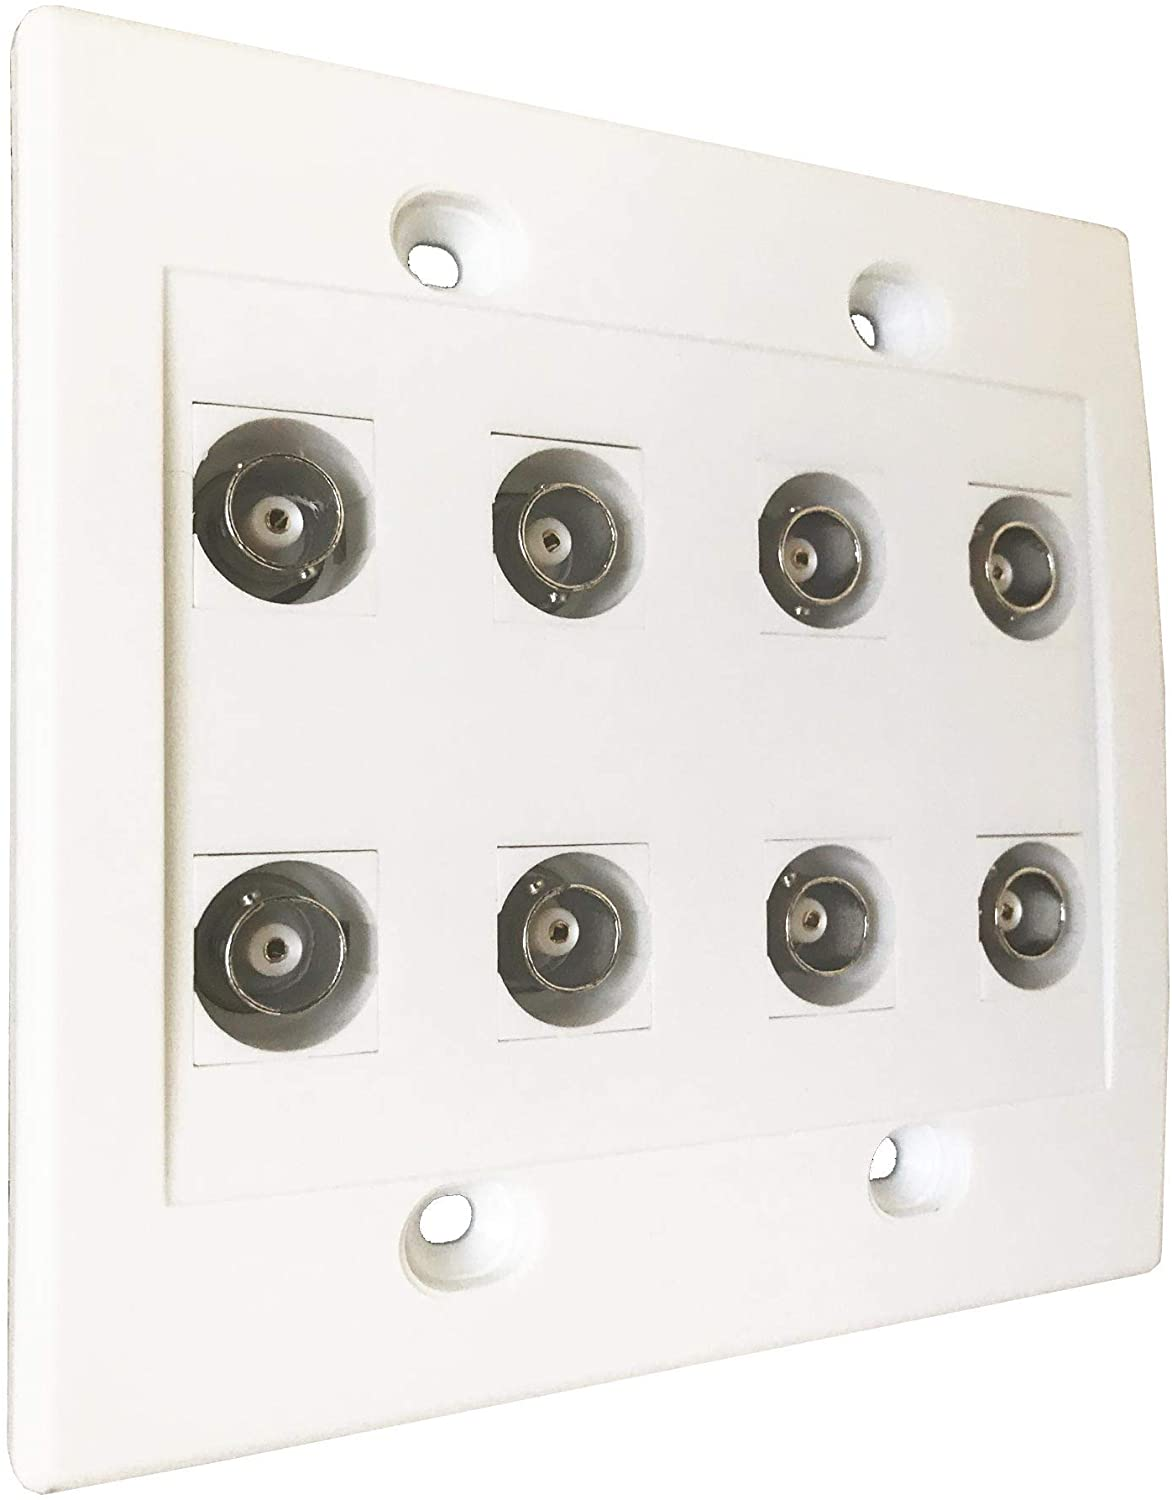 diyTech BNC Wall Plate, 8 Port, Female to Female connectors, HD-SDI, CCTV Security Camera - White